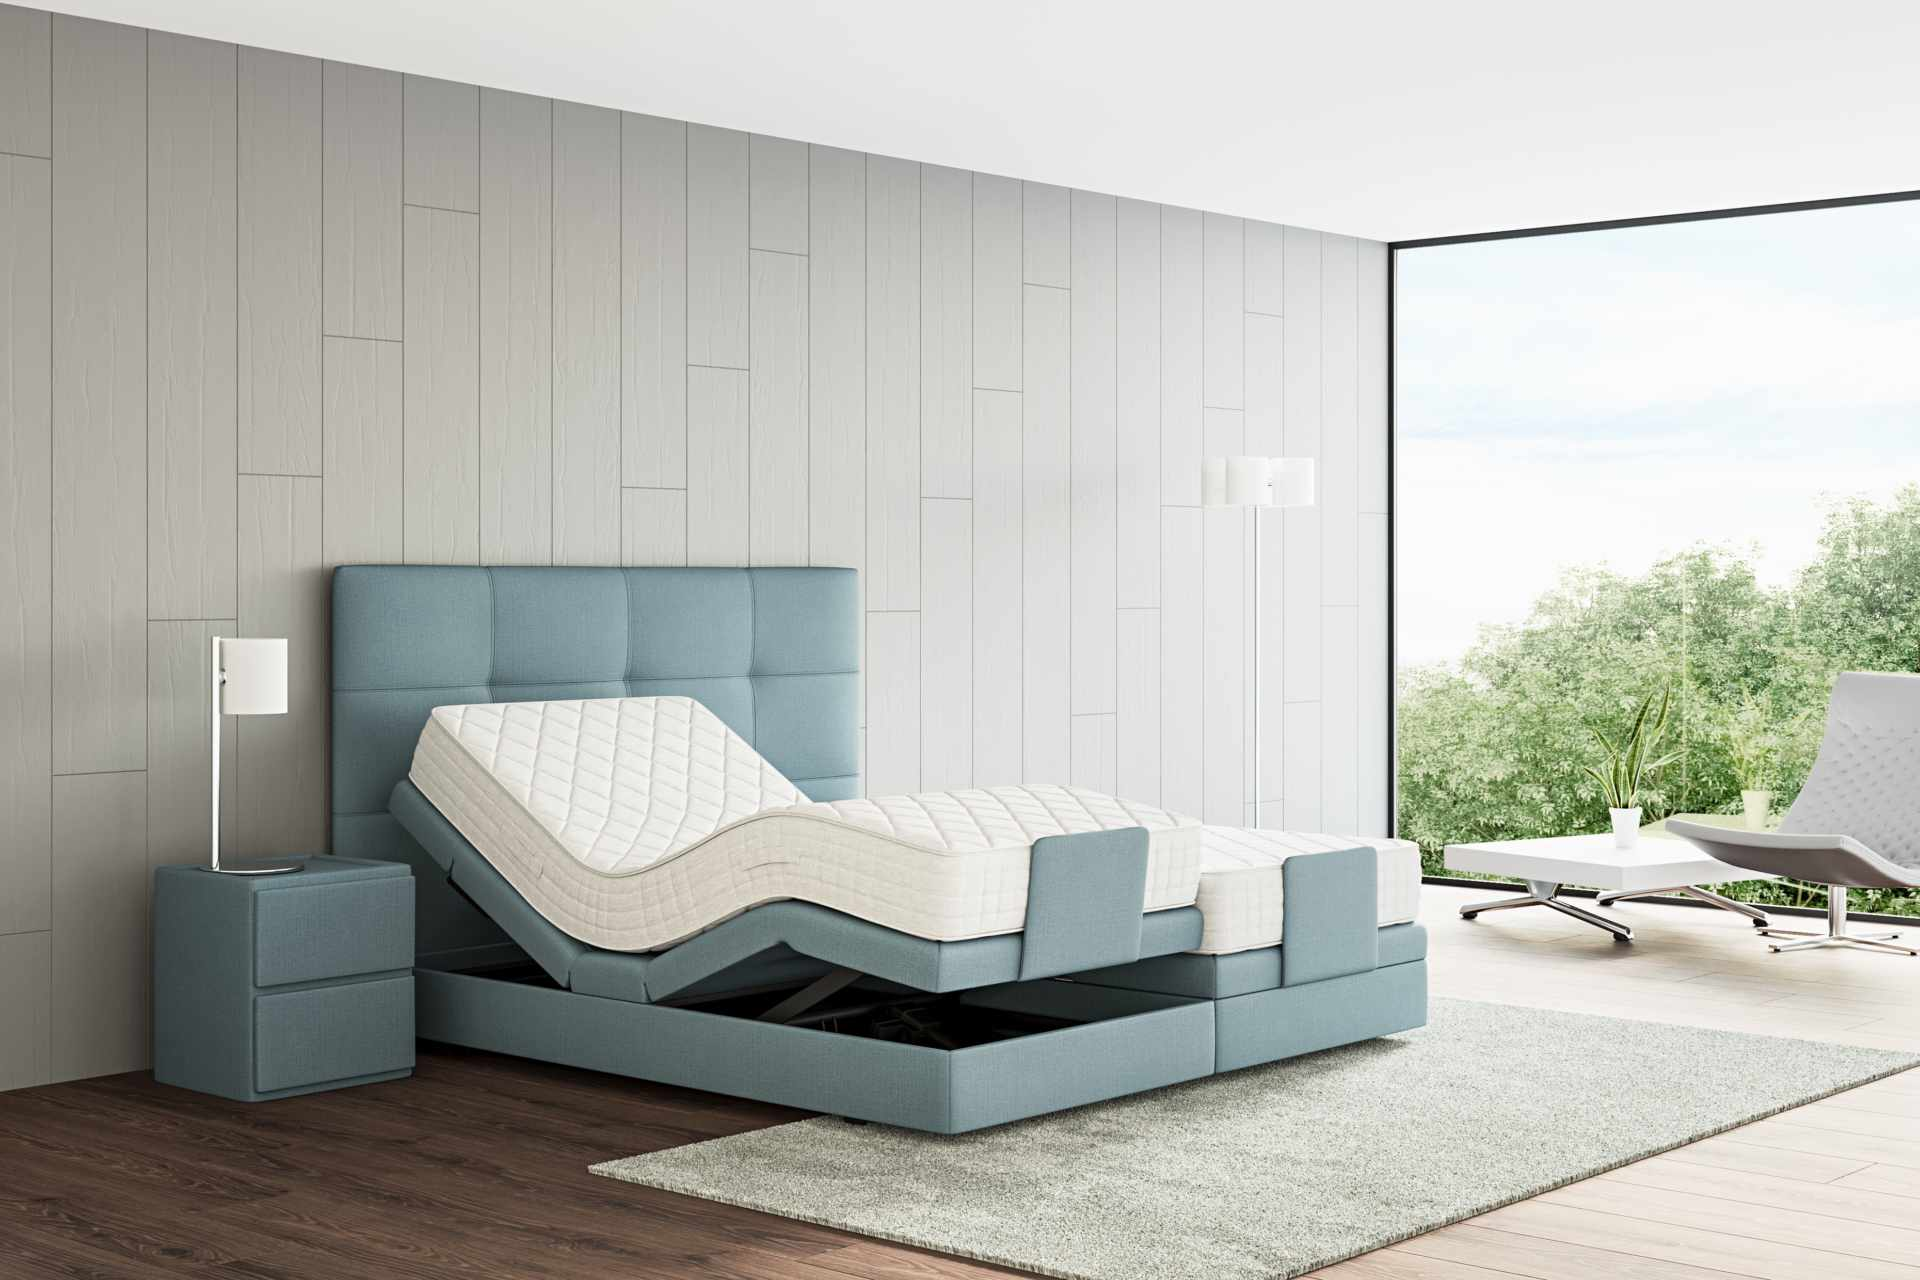 boxspringbett eos relax schlafstudio helm wien. Black Bedroom Furniture Sets. Home Design Ideas